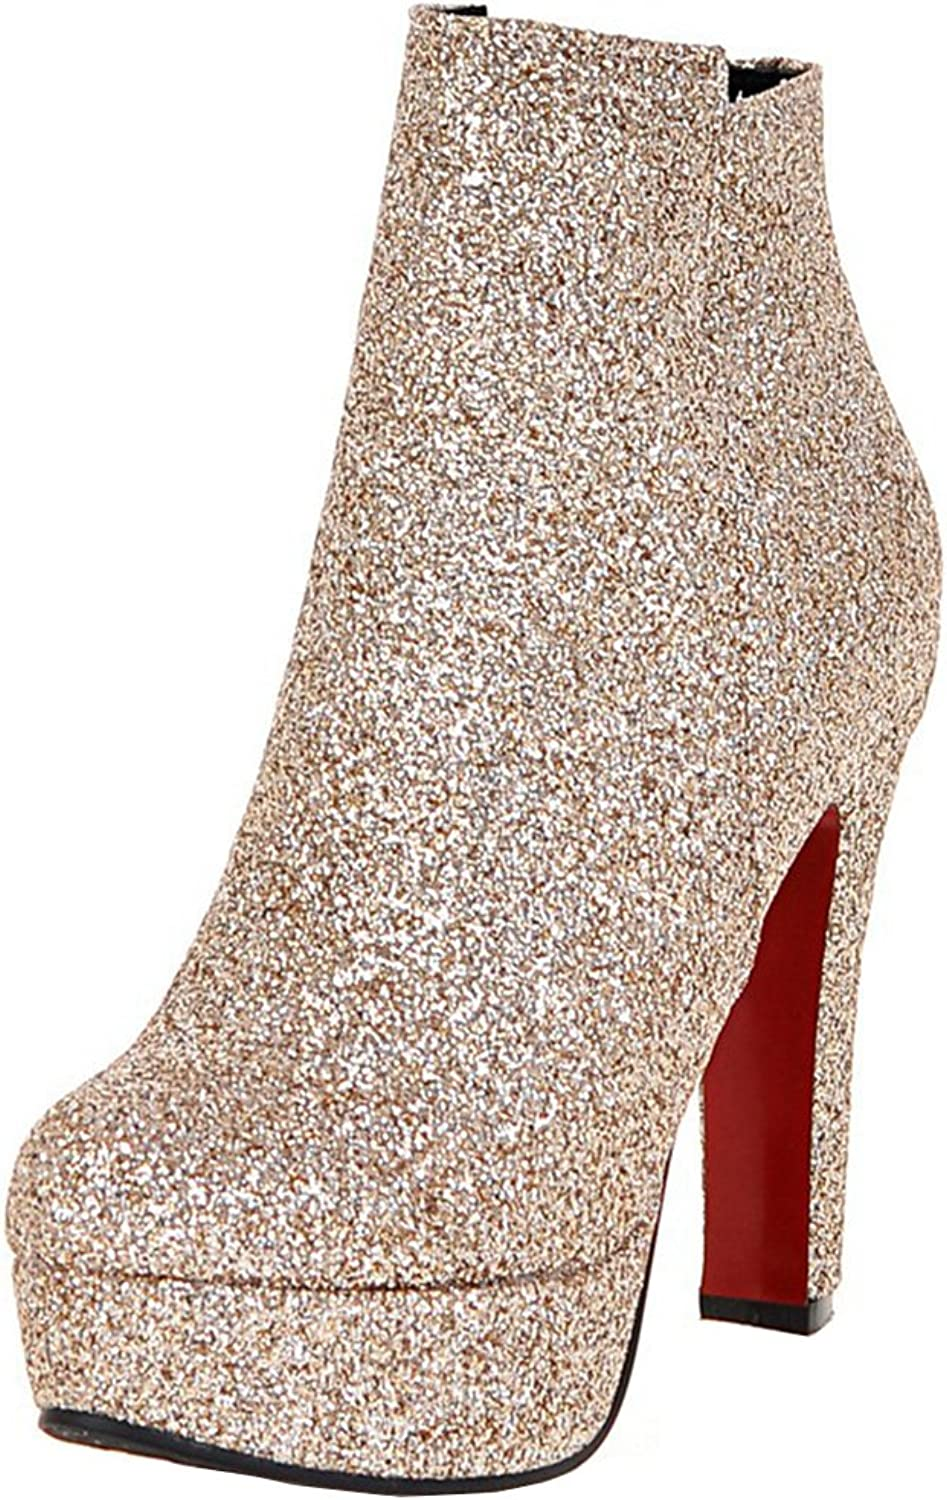 AIYOUMEI Women's Fashion Glitter Platform Zipper Bootie High Heels Solid Autumn Winter Ankle Boots with Sequins